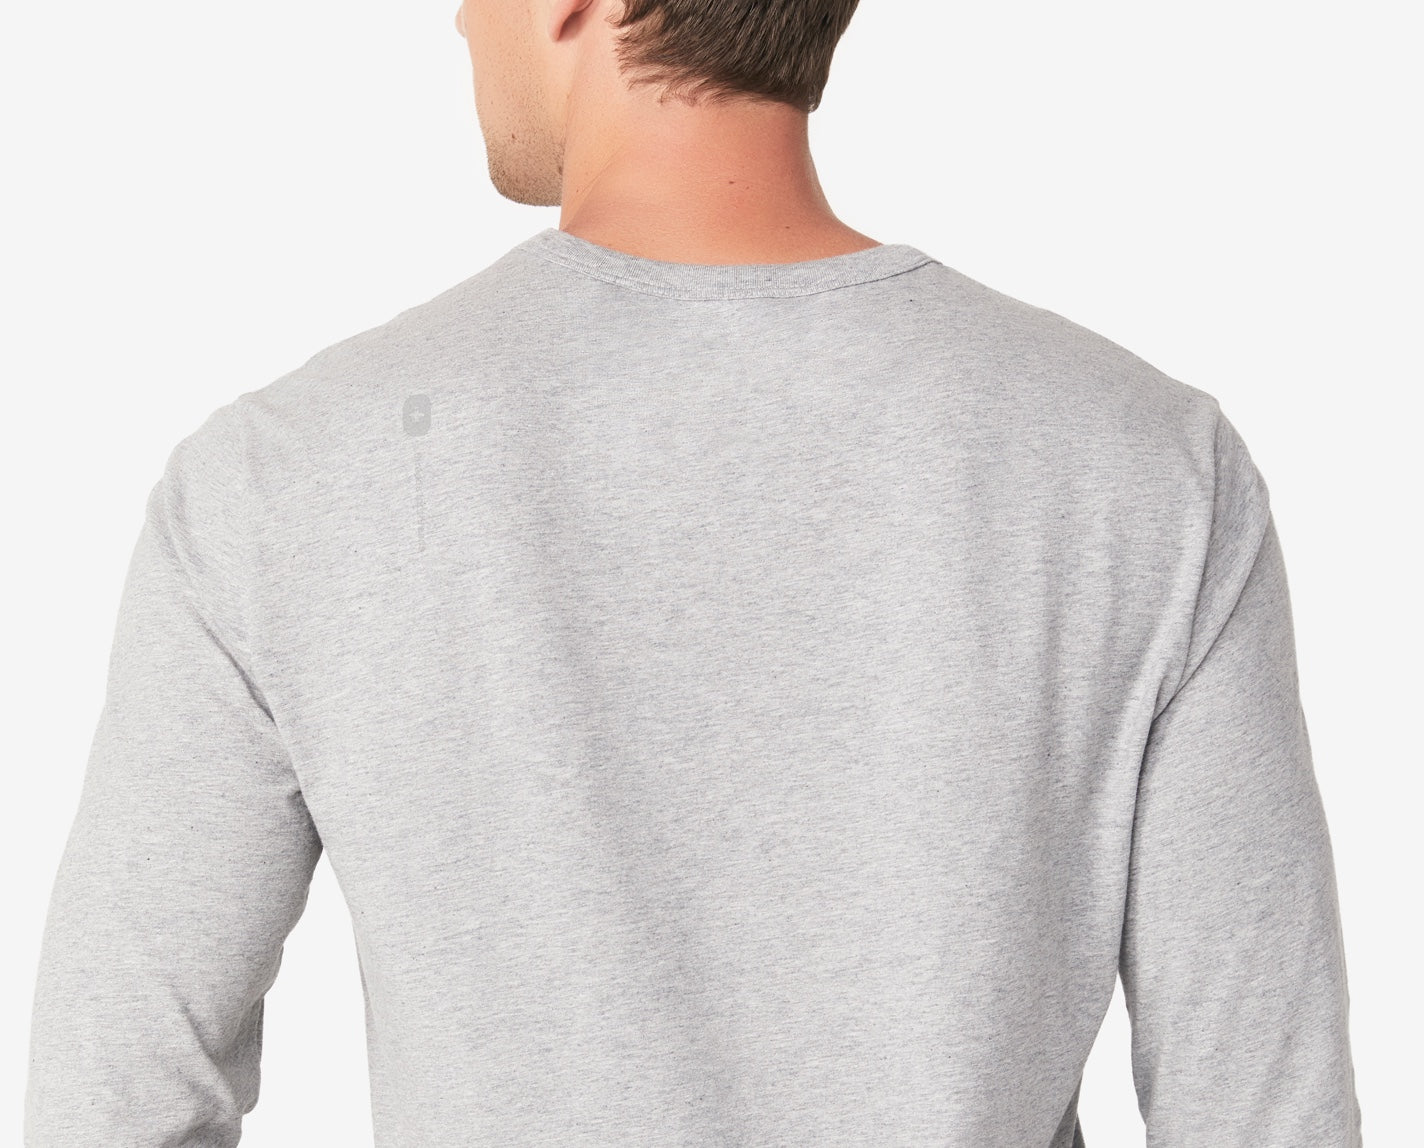 A man needs layers. Made from our SuperSoft Pima Cotton, these underscrubs feature a tight knit with a smooth, opaque finish and an expertly designed fit that's roomy enough to be comfy and slim enough to be stylish. Wear them under your scrubs or solo. And the best part? Our underscrubs get more awesome with each wear and wash.